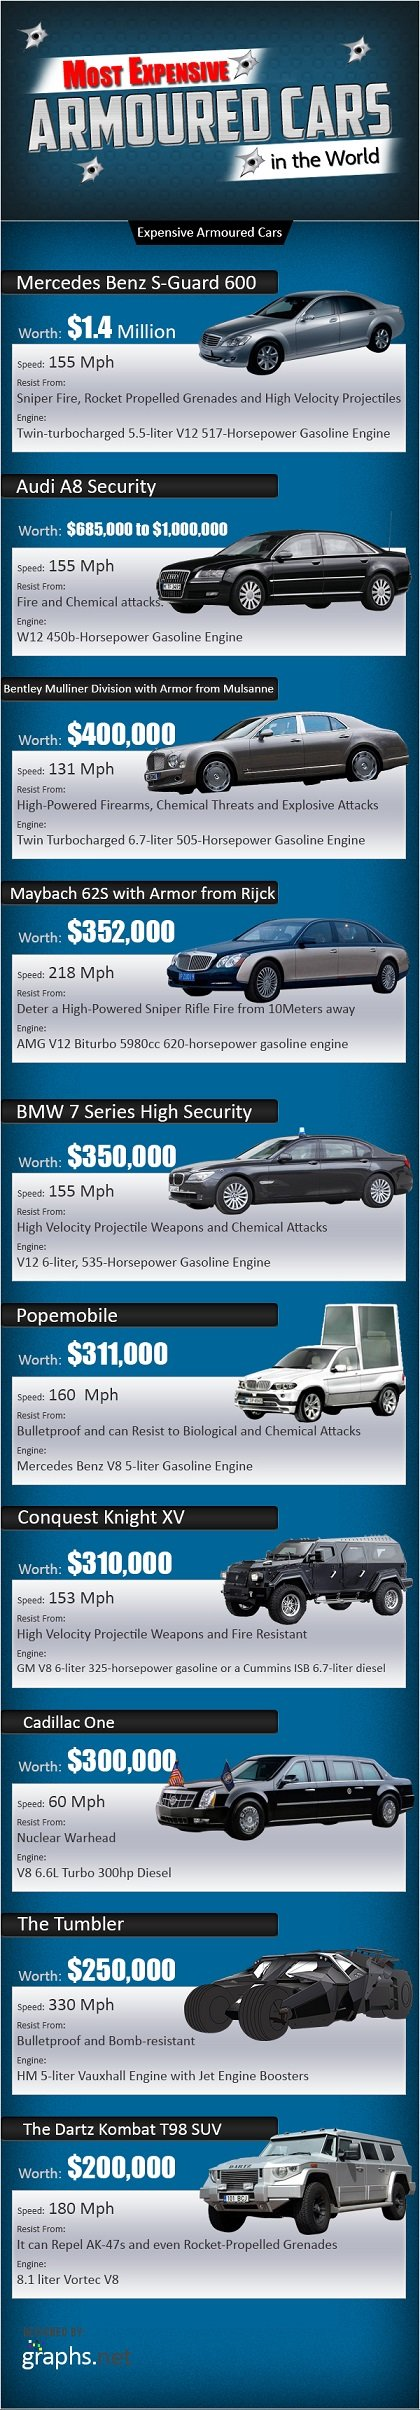 Most Expensive Armored Cars in the World - infographic